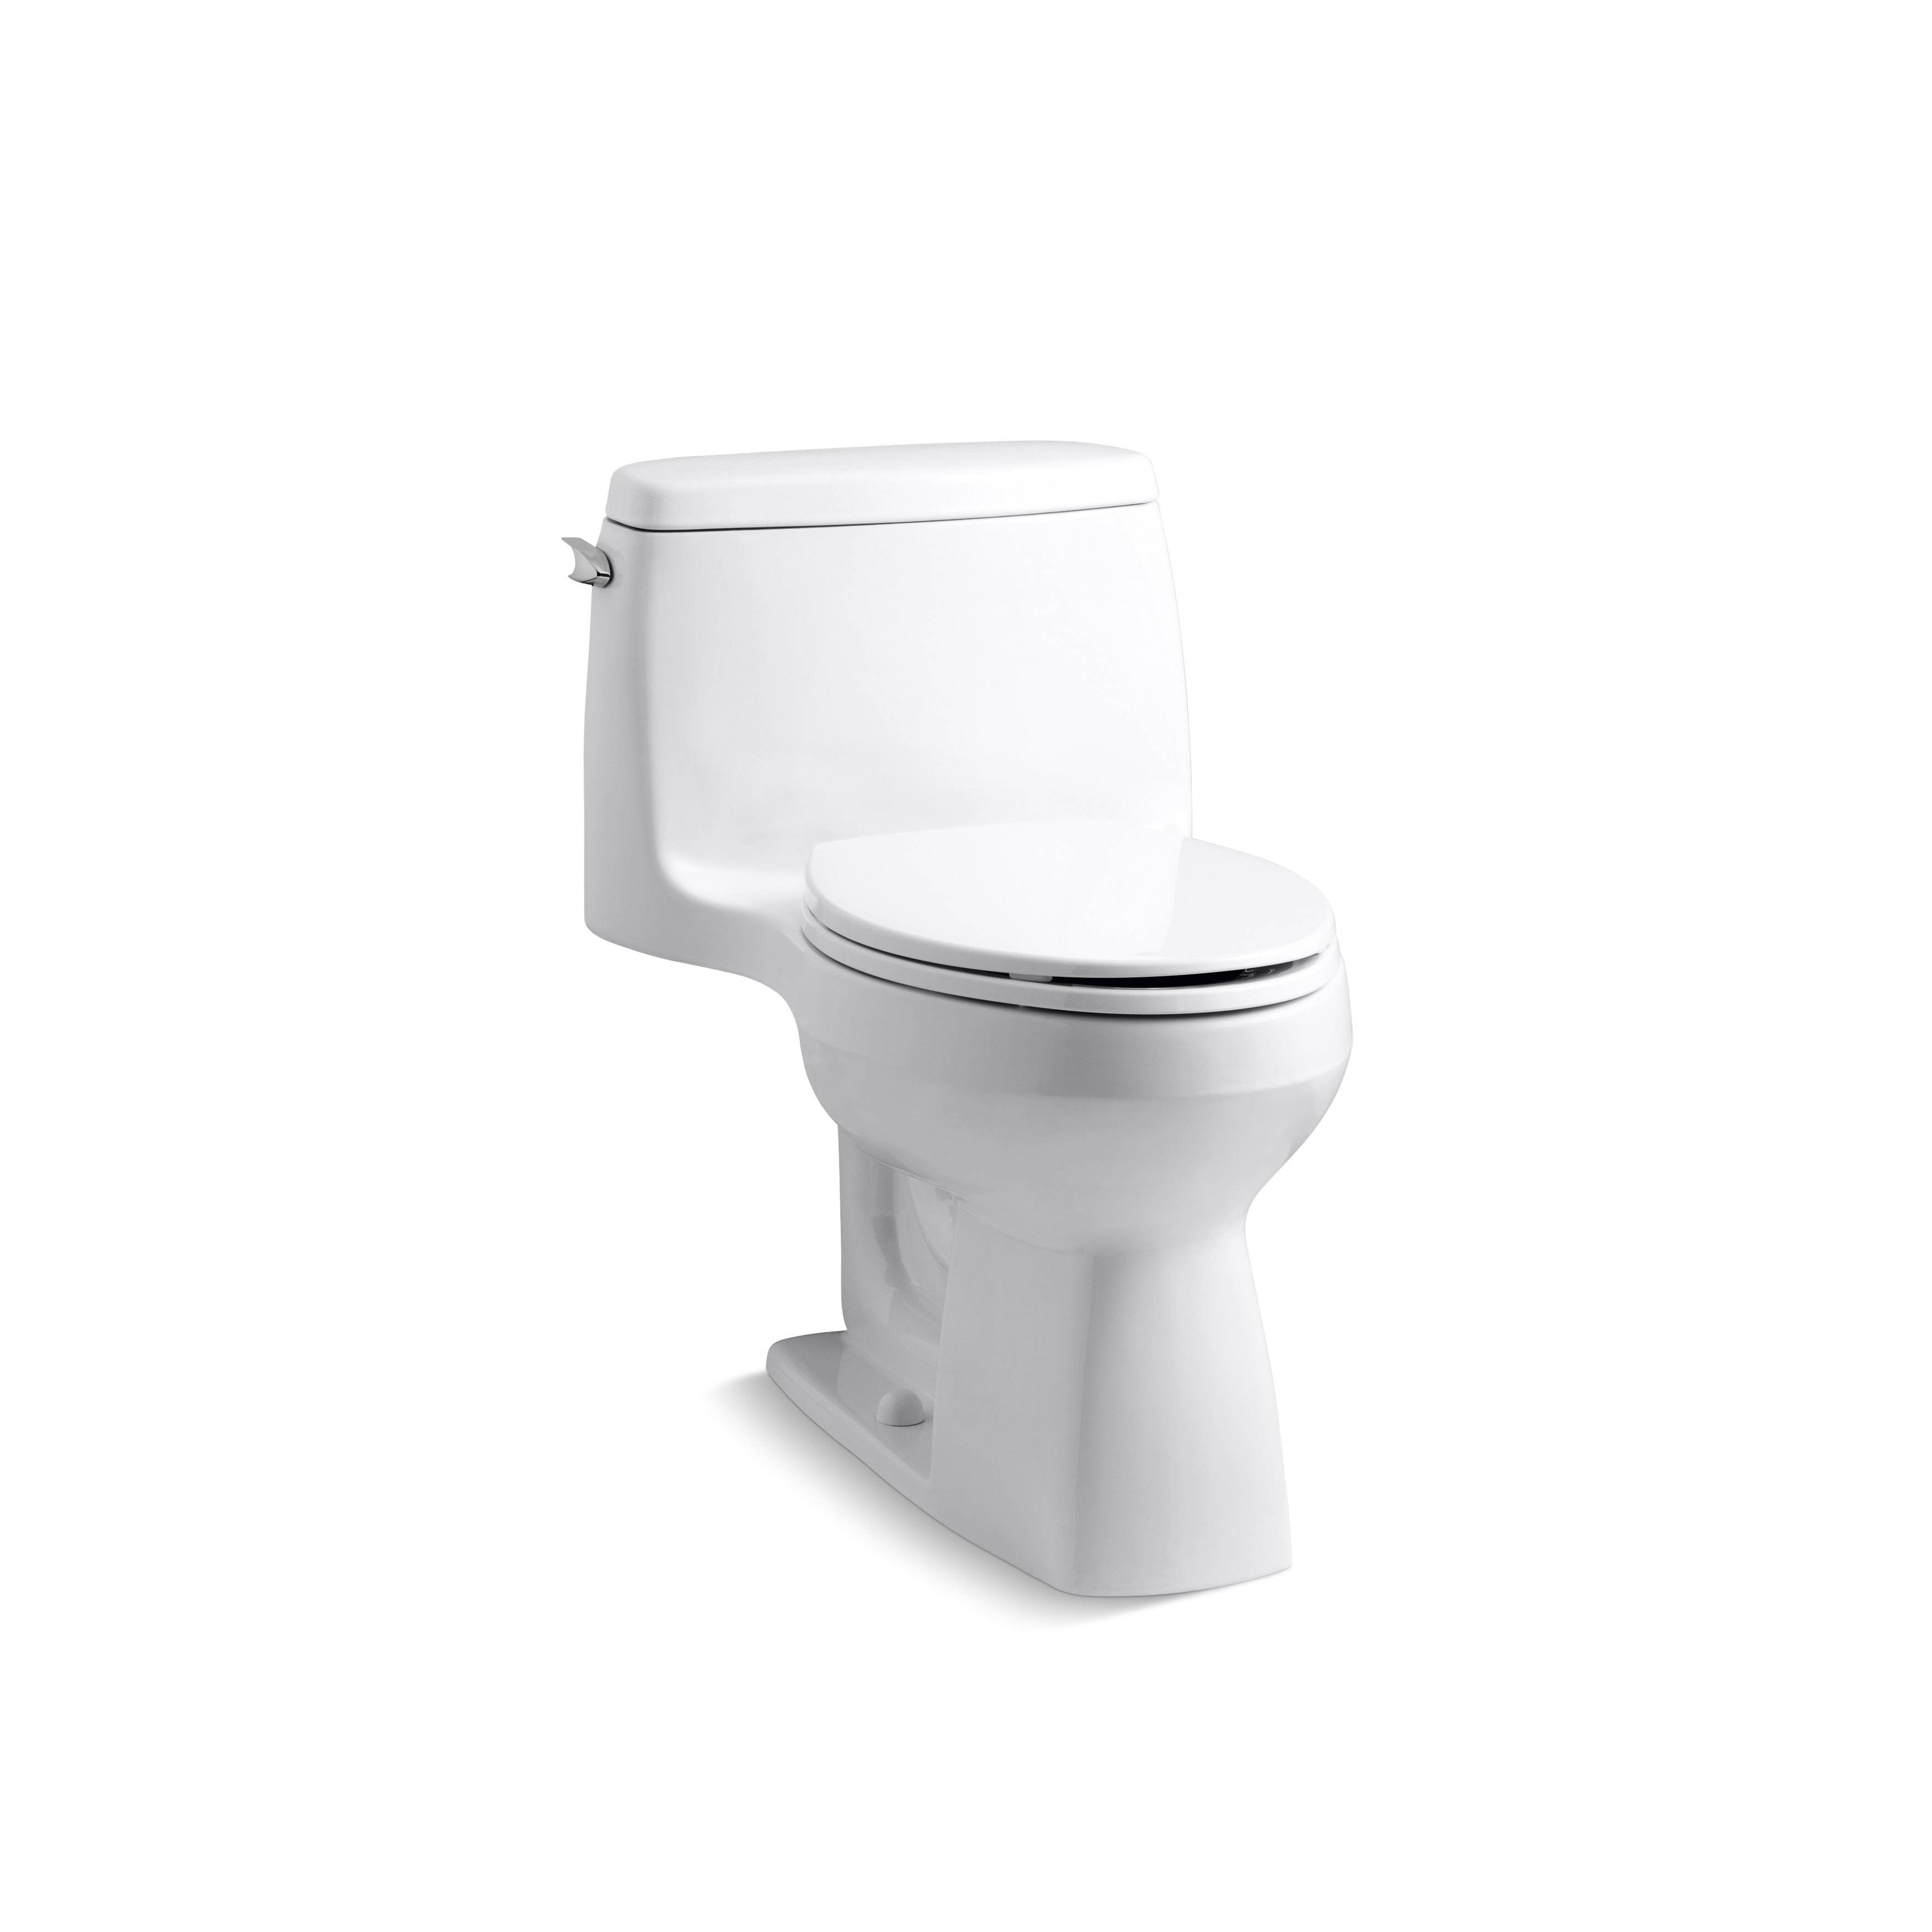 kohler santa rosa comfort height compact 1 28 gpf elongated 1 piece toilet k 3810 koh17922